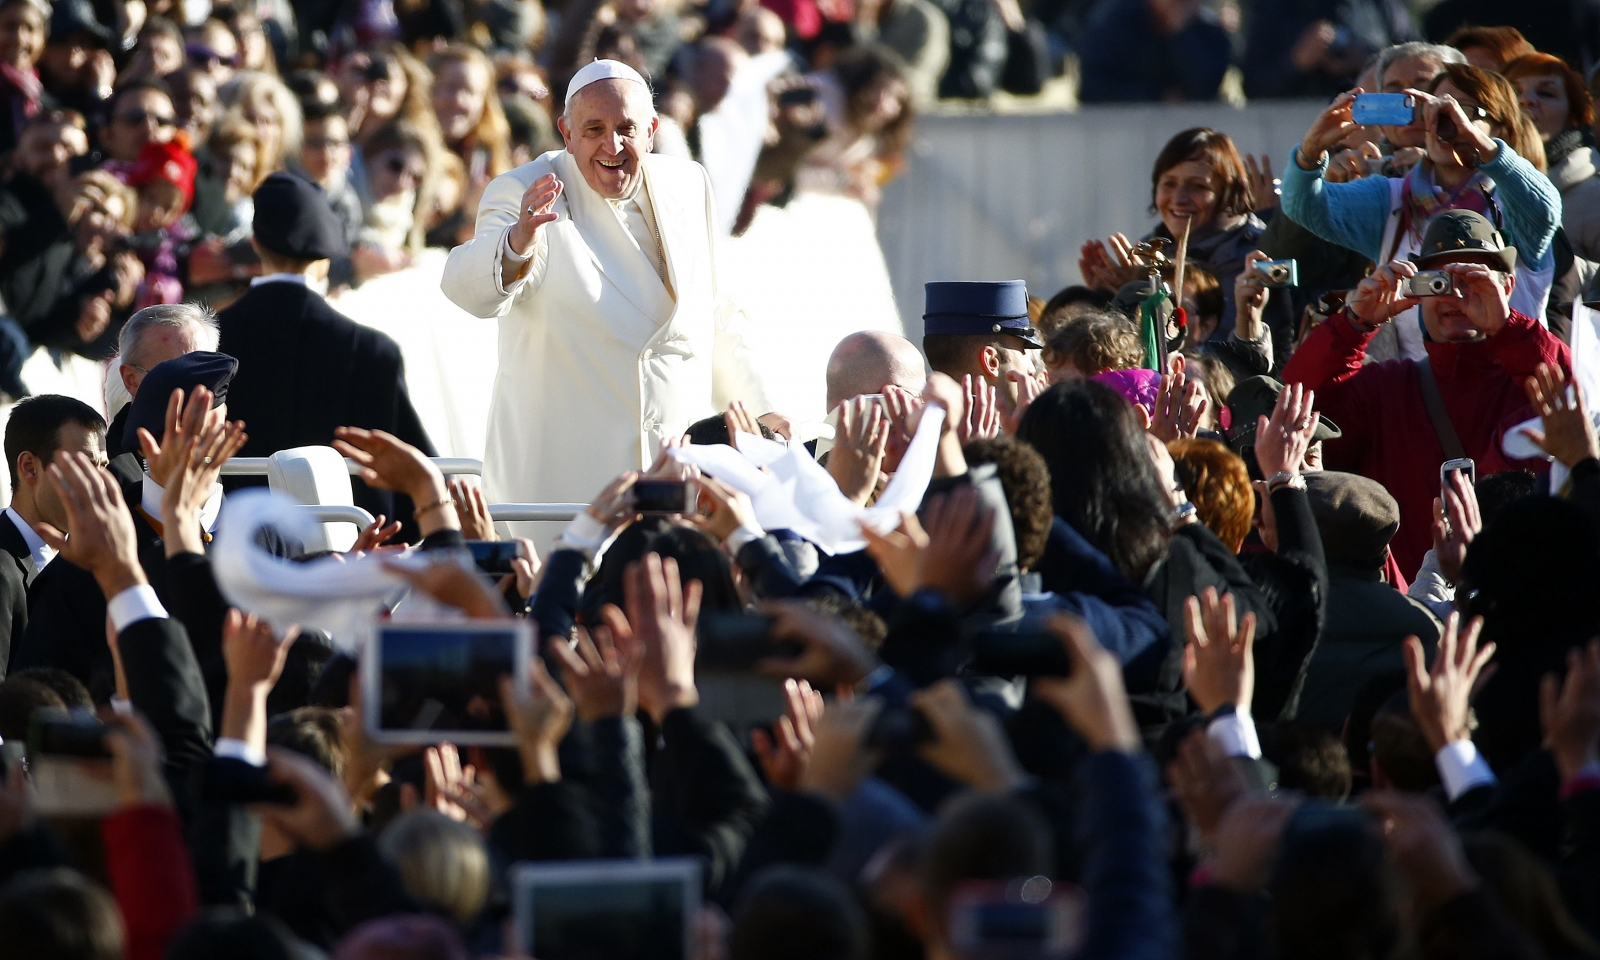 Crowd serenades Pope Francis with a song and tango on his 78th birthday